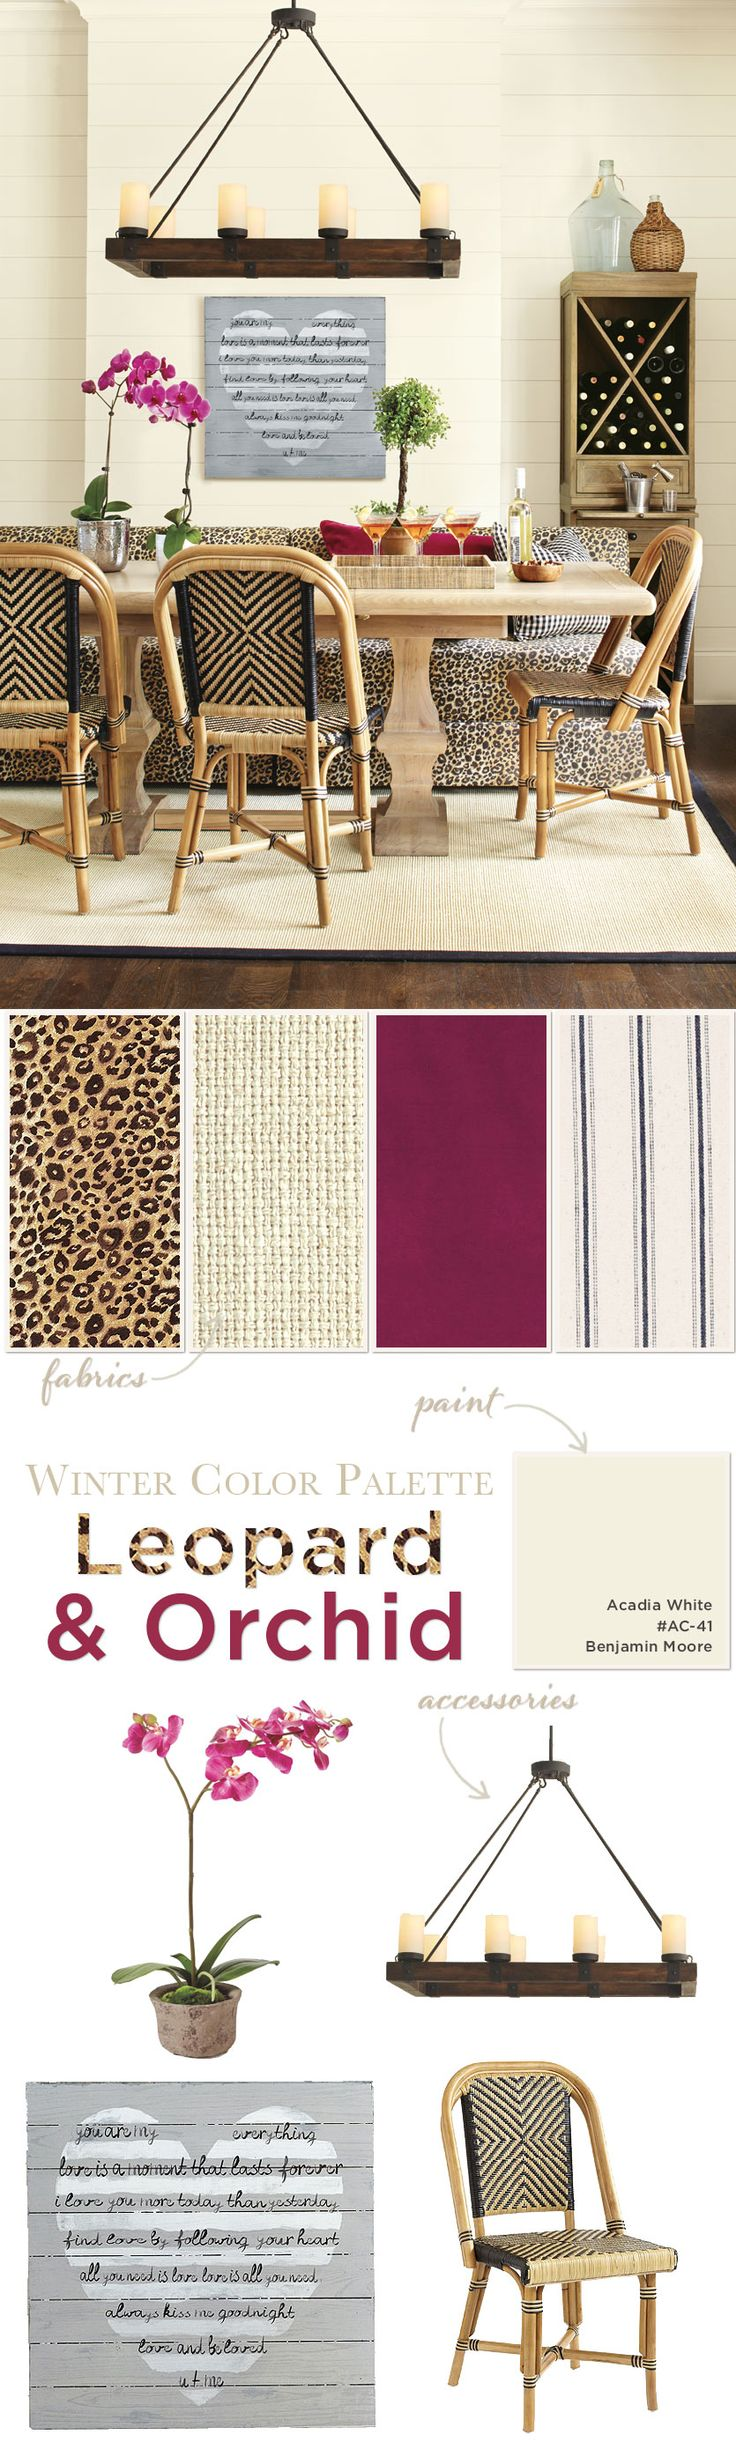 Dining Room Color Palette With Leopard Print And Magenta Accents Part 59